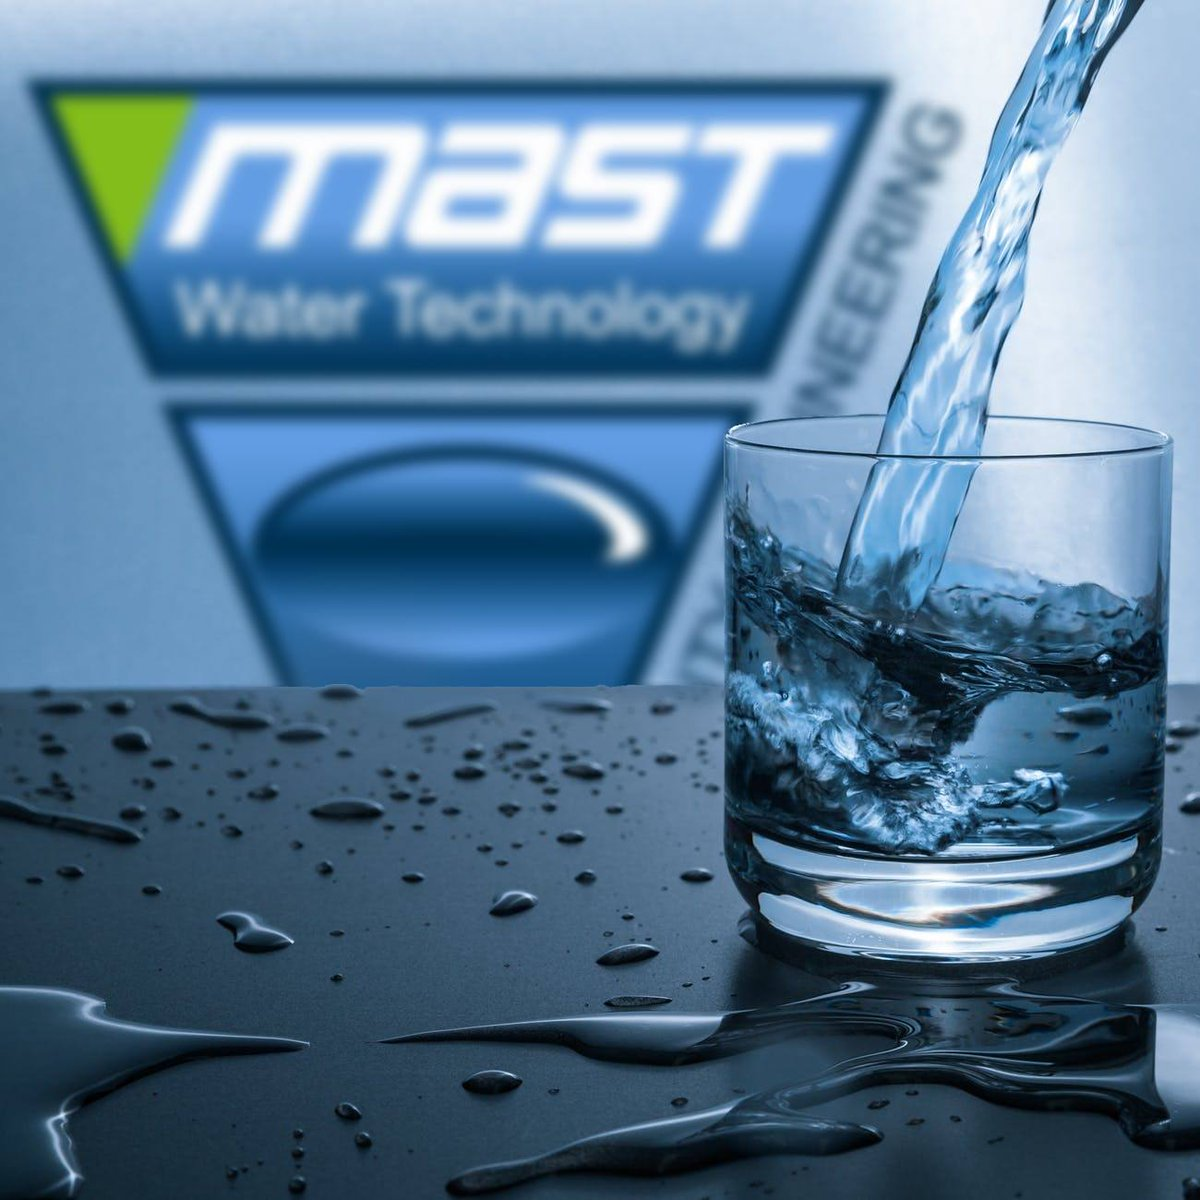 Image result for Mast Water Technology